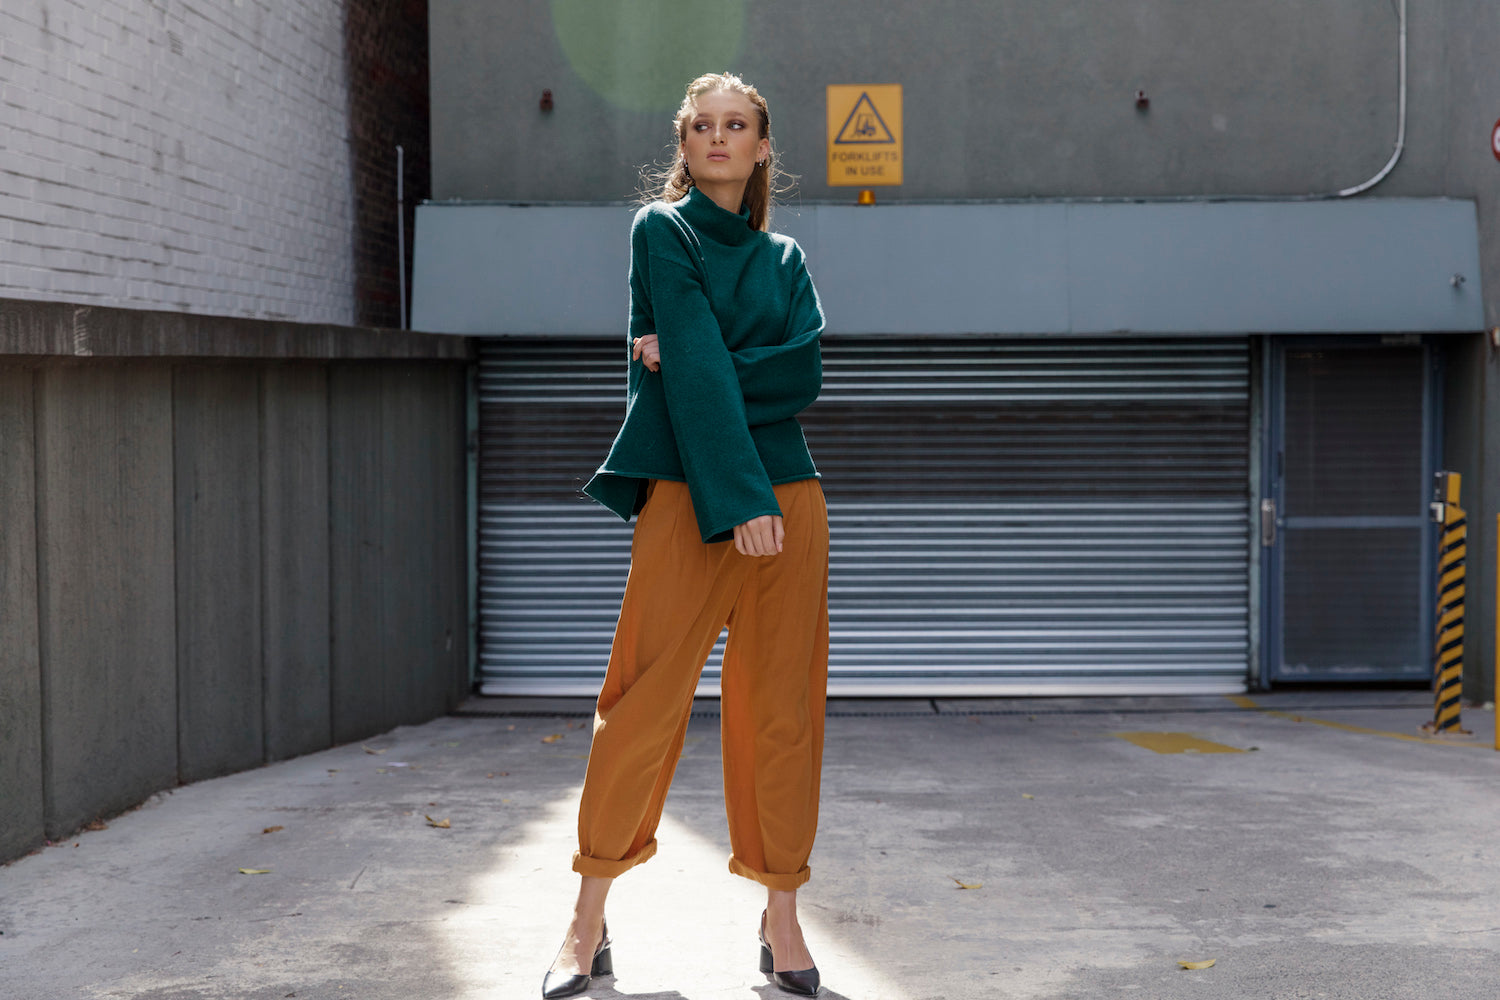 Australian luxury brand St Cloud Label makes high quality, premium knitwear at an affordable price, such as this parnis mock neck sweater, made from felted wool, available in green, wine and grey